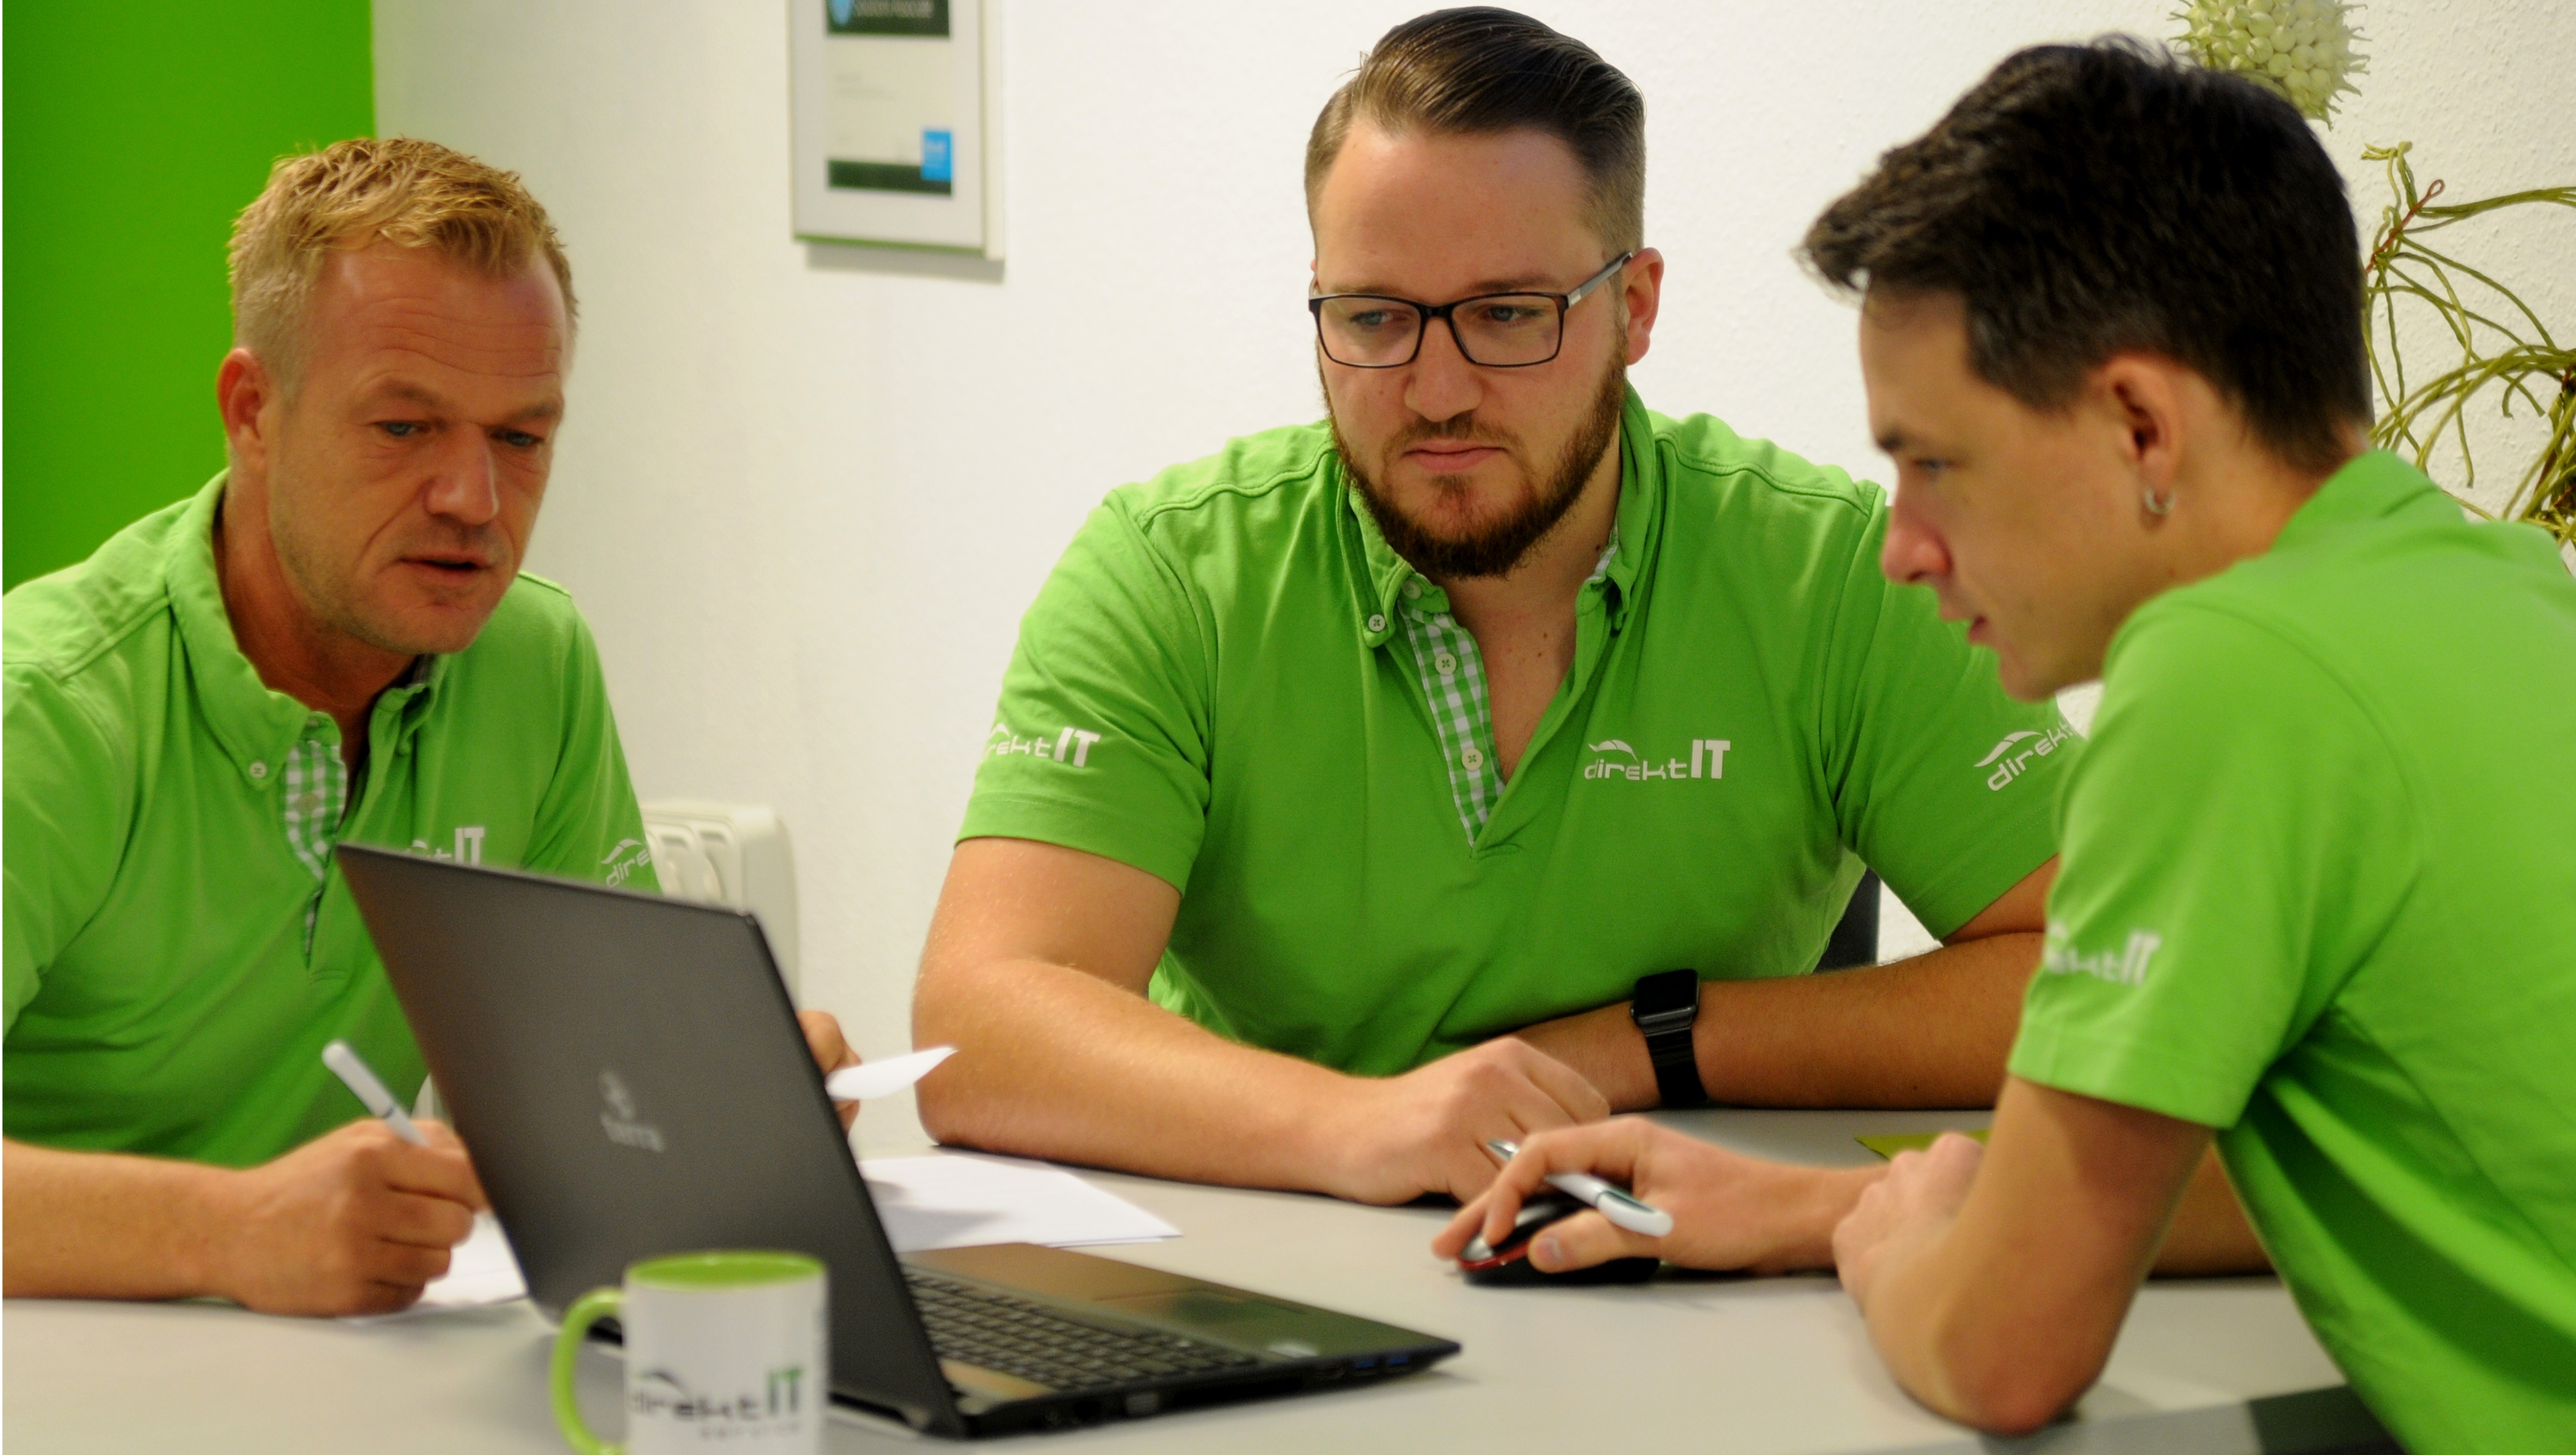 direkt IT Team EDV Service Laptop